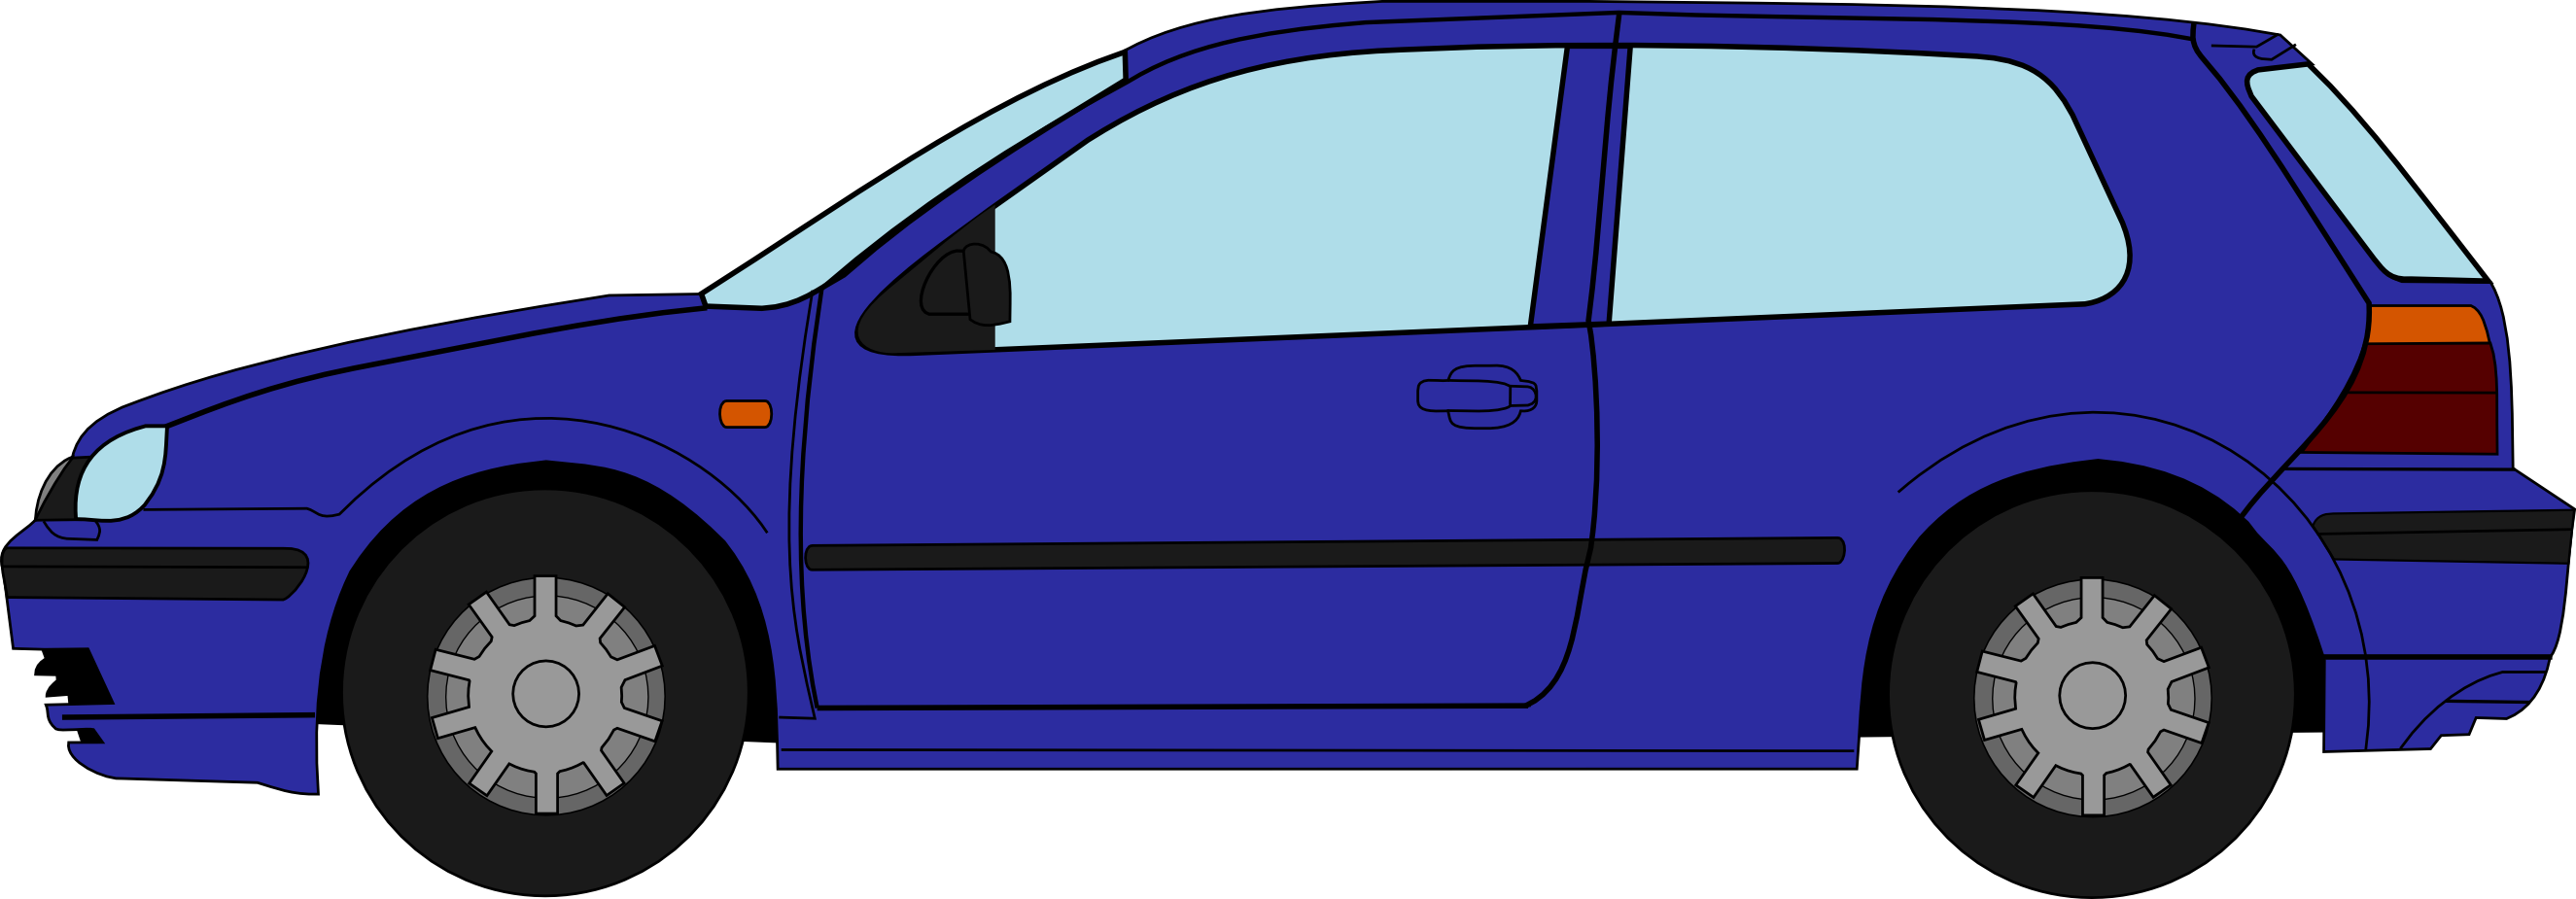 Download Vw Golf 4 Profile Drawing Vw Golf 4 Drawing Png Image With No Background Pngkey Com